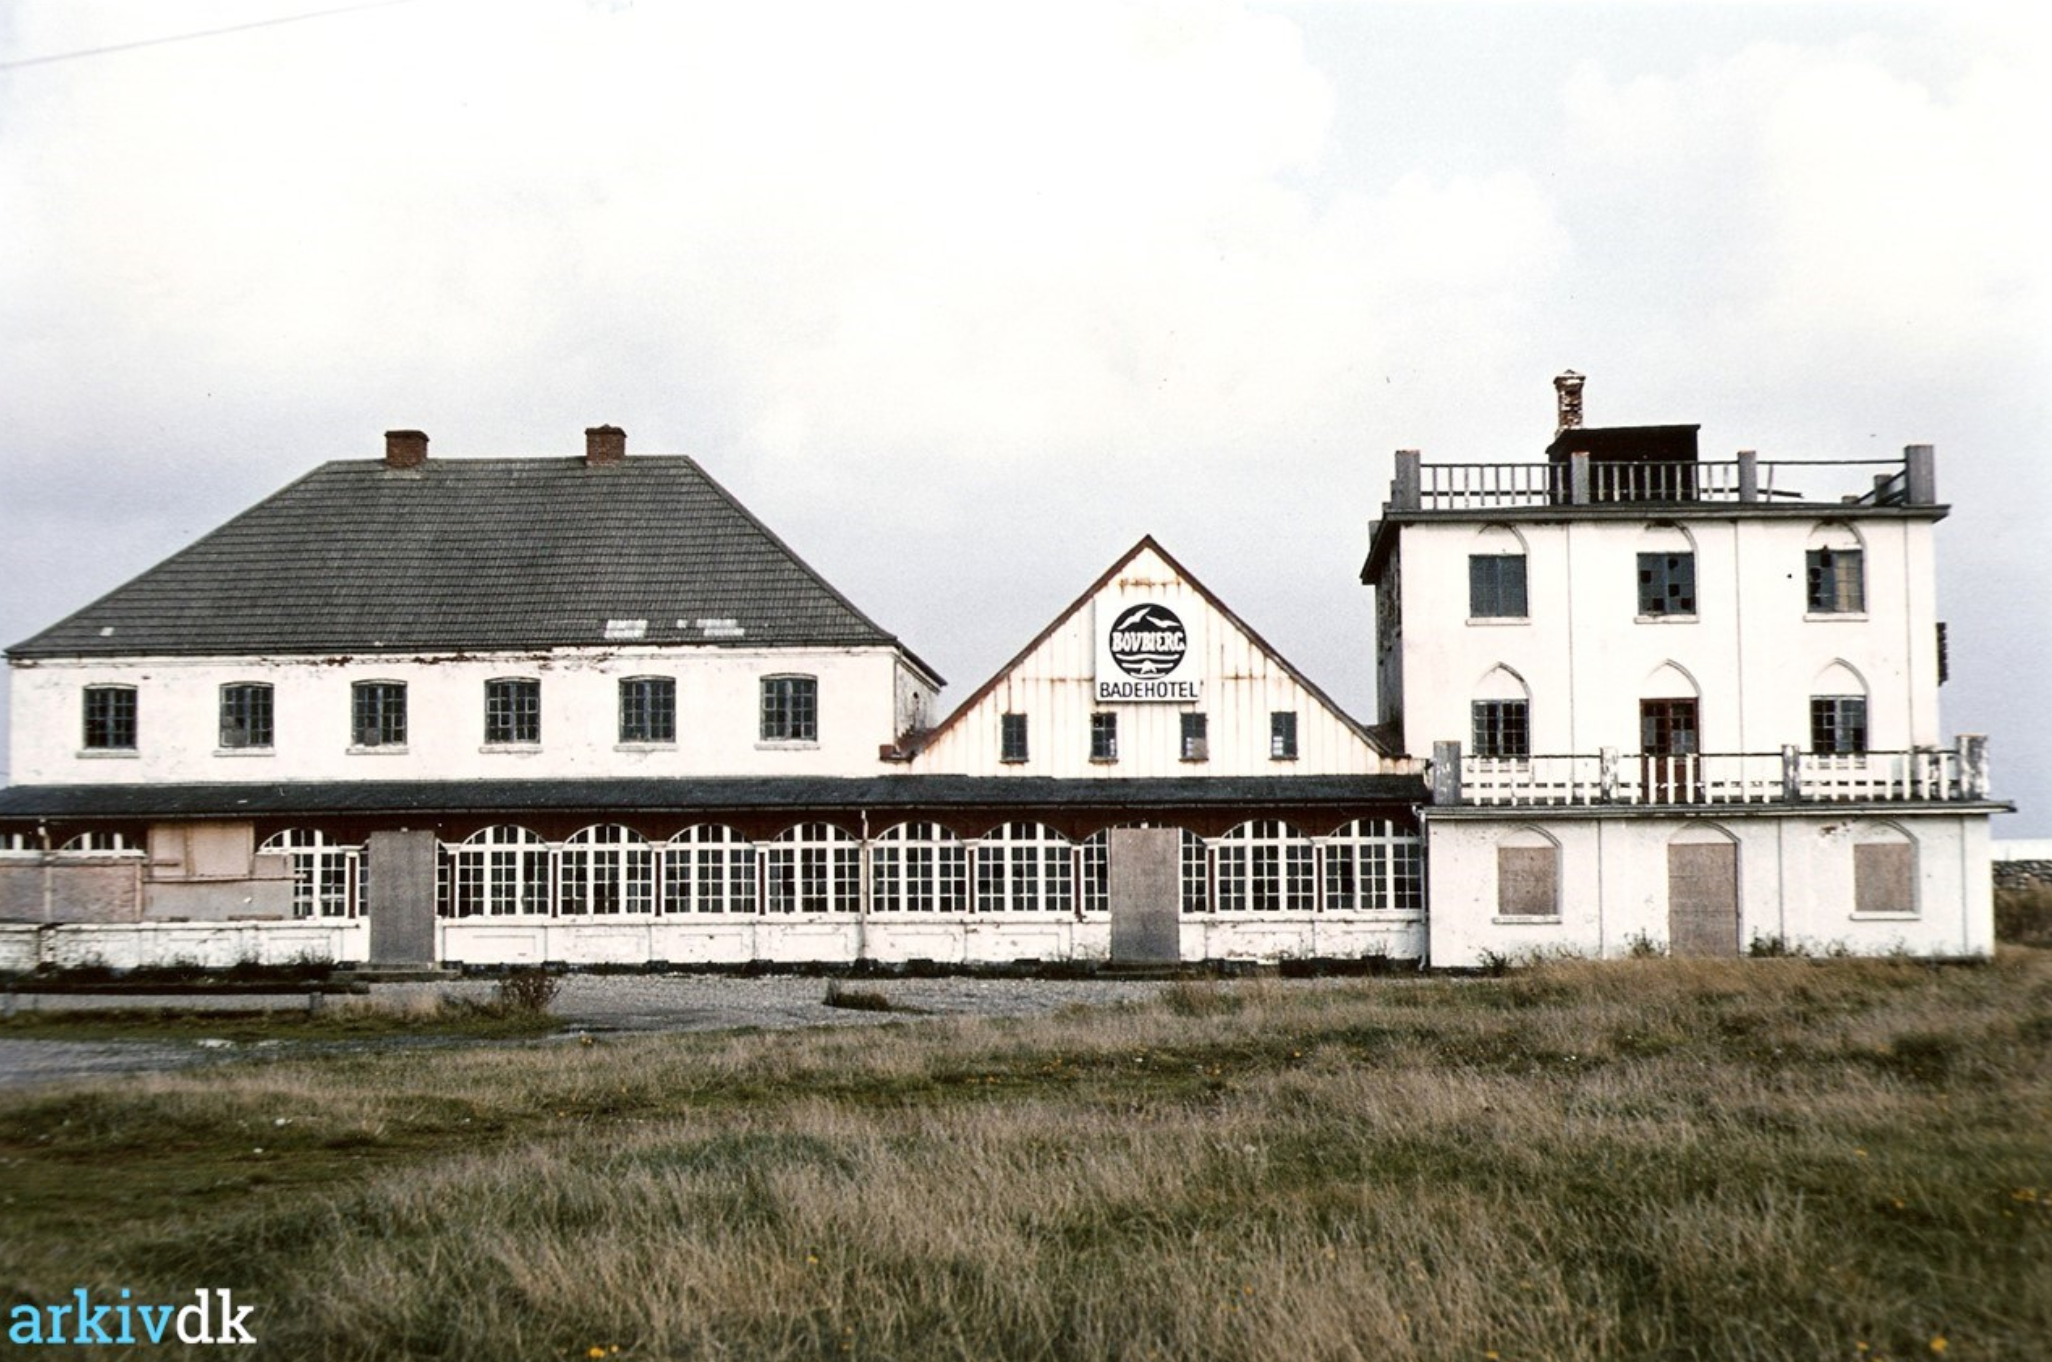 A bit of history. I especially recall Bovbjerg Badehotel (swim hotel). It was sold by local artist, Kristen Bjerre in 1974 and left in decay hereafter. Coincidentally, I also lived on a street in Lemvig named after this artist (Kristen Bjerre's Vej). The hotel was eventually torn down and new holiday rental units have been built in the same location. Photo credit: arkiv.dk